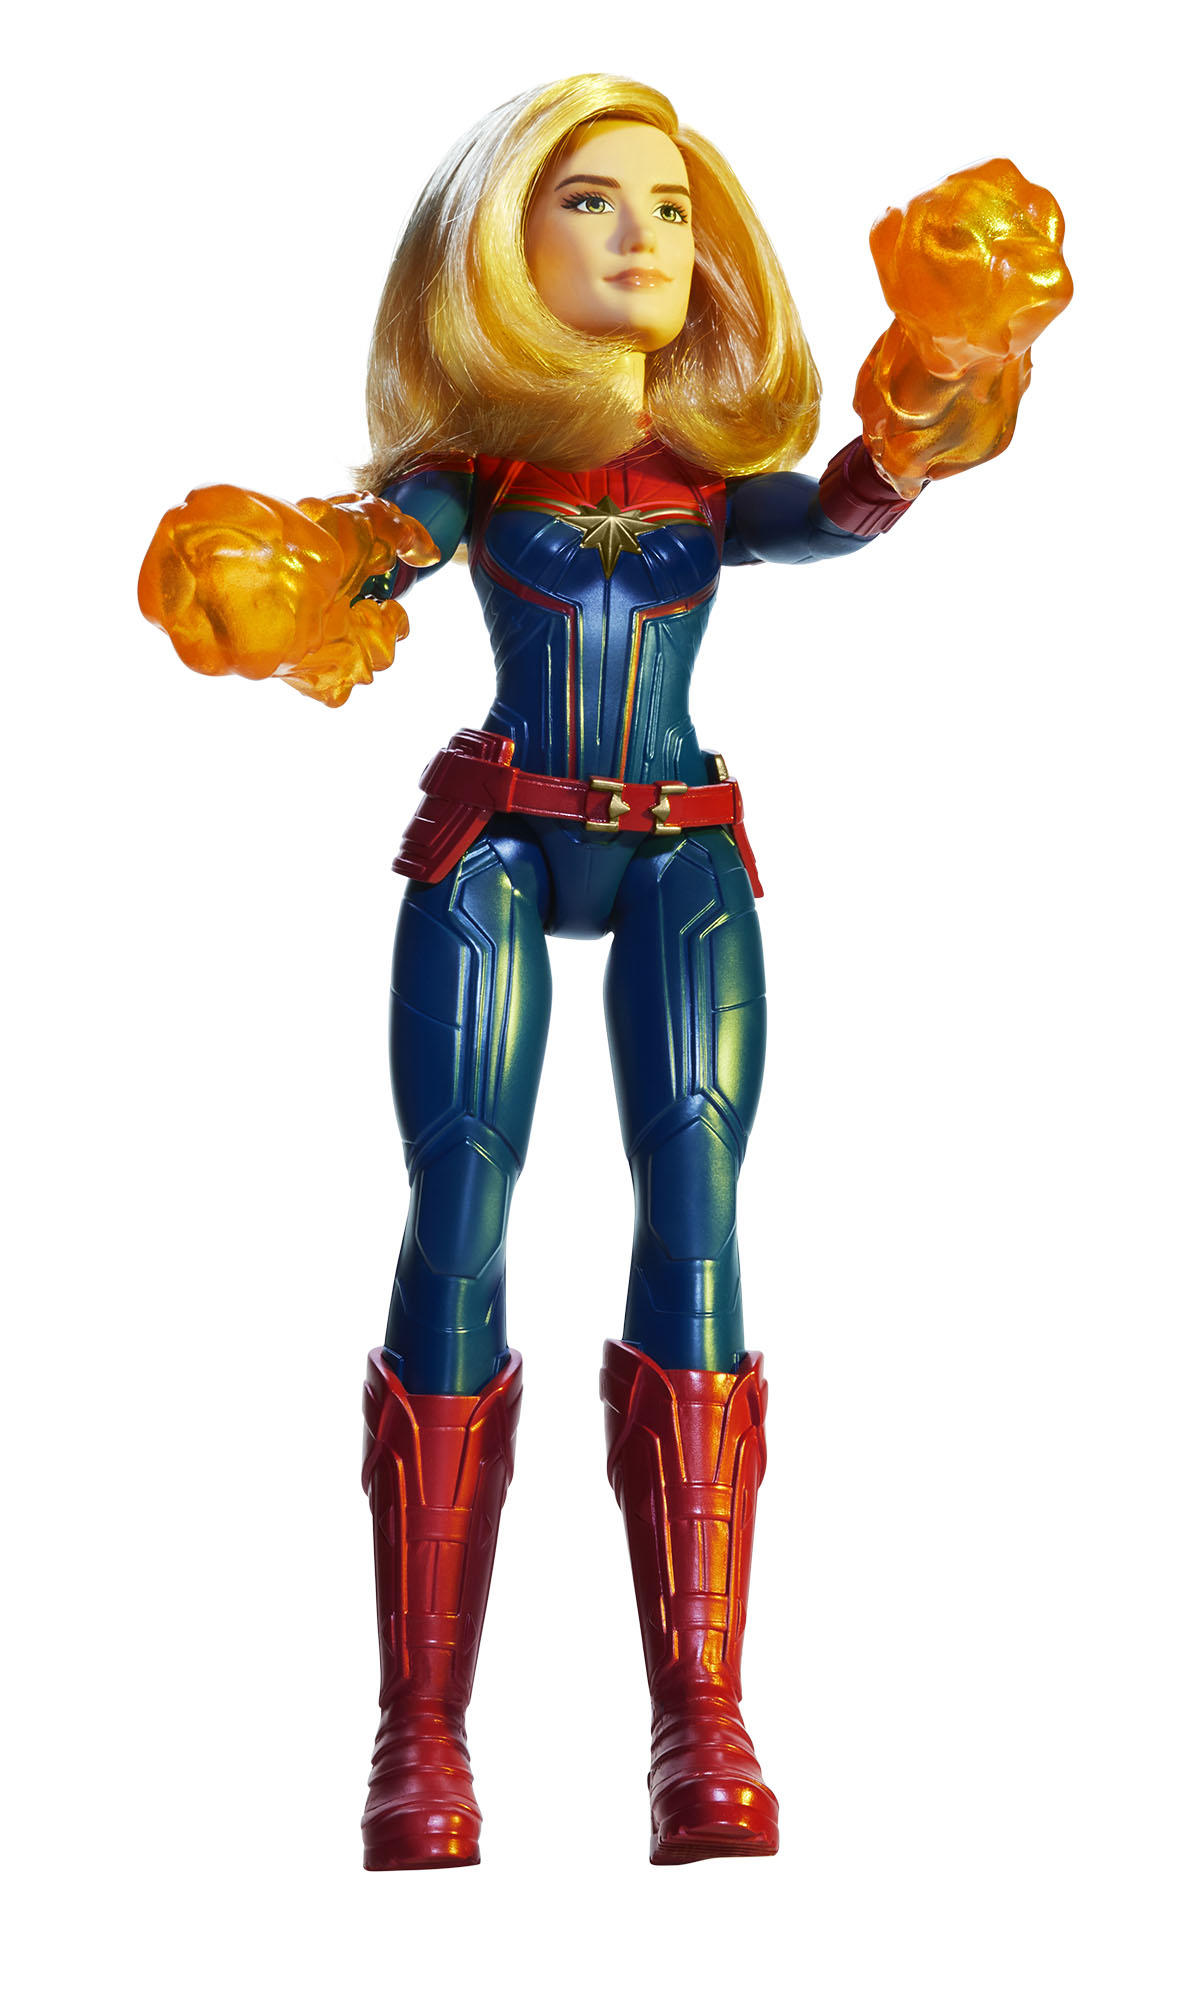 hasbro reveals 'captain marvel' marvel legends figures | news | marvel